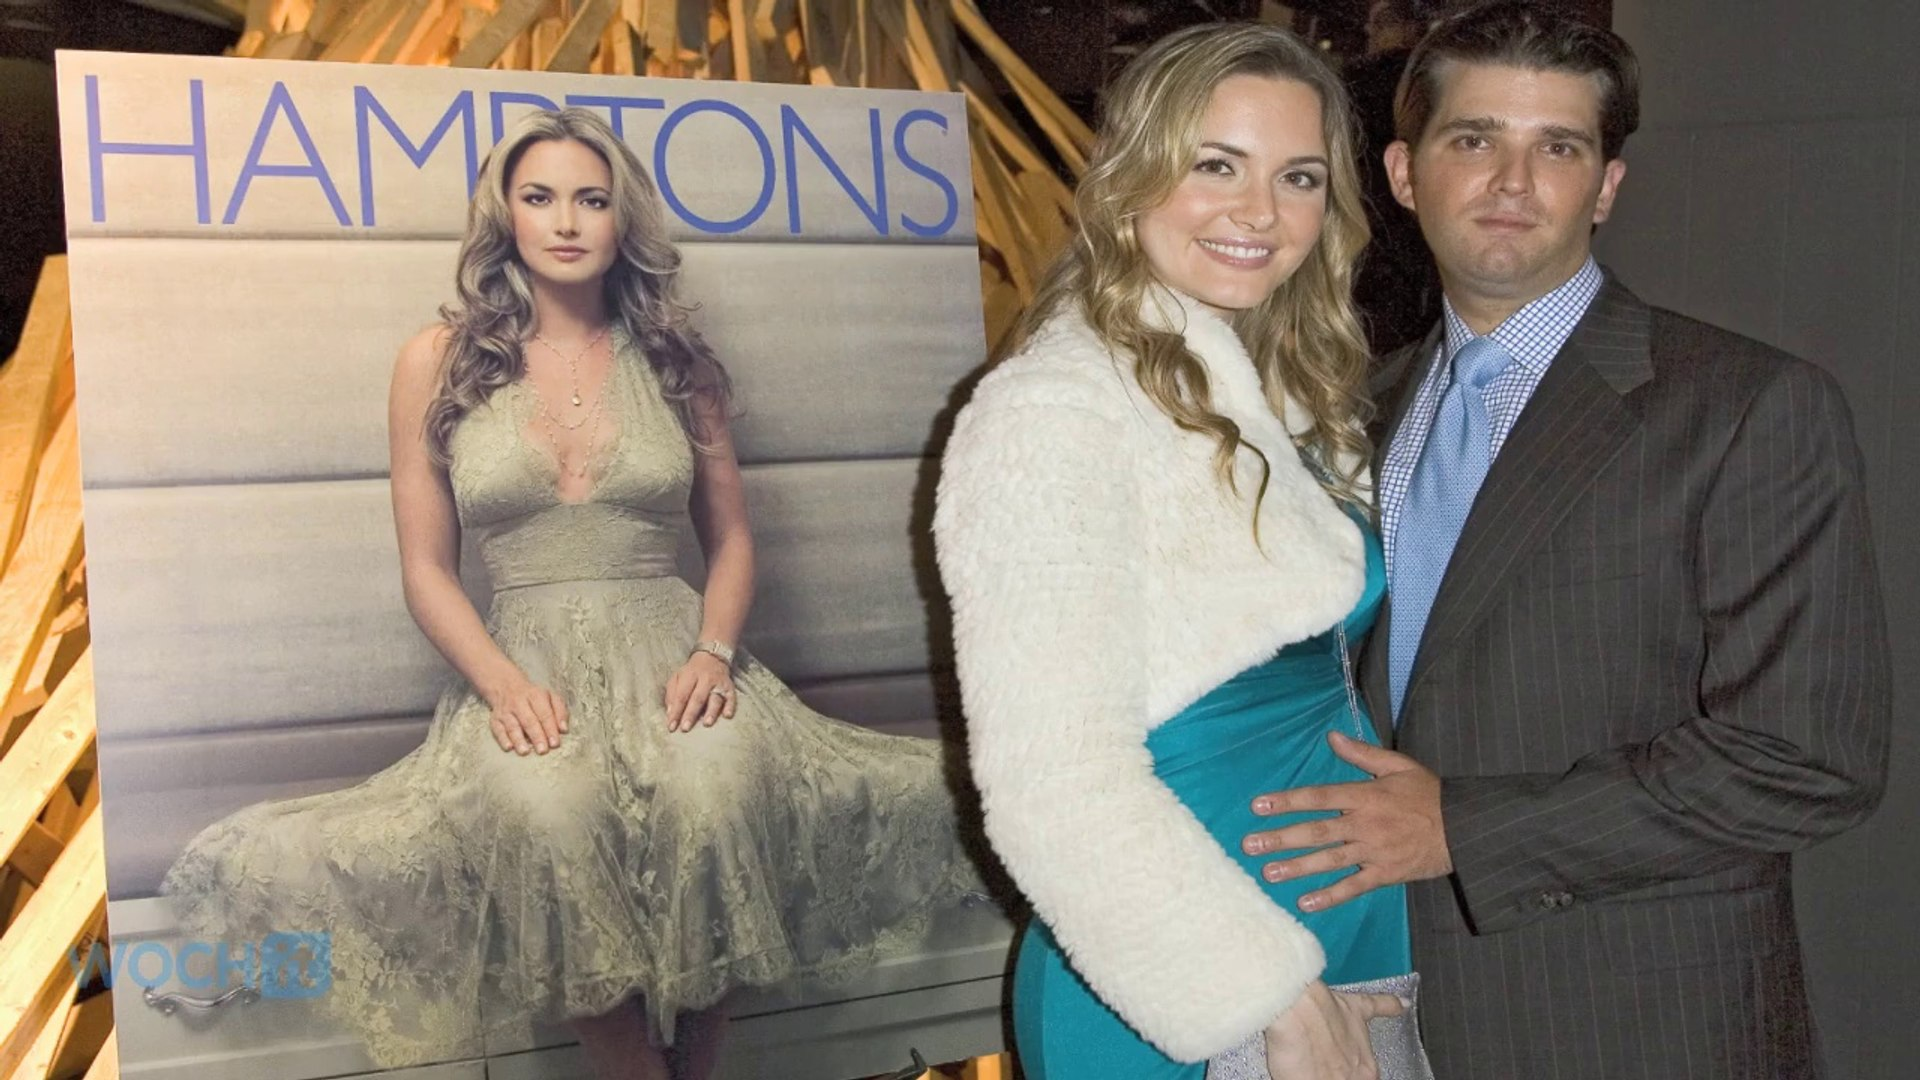 Donald Trump Jr. And Vanessa Trump Welcome Baby Girl, Their Fifth Child